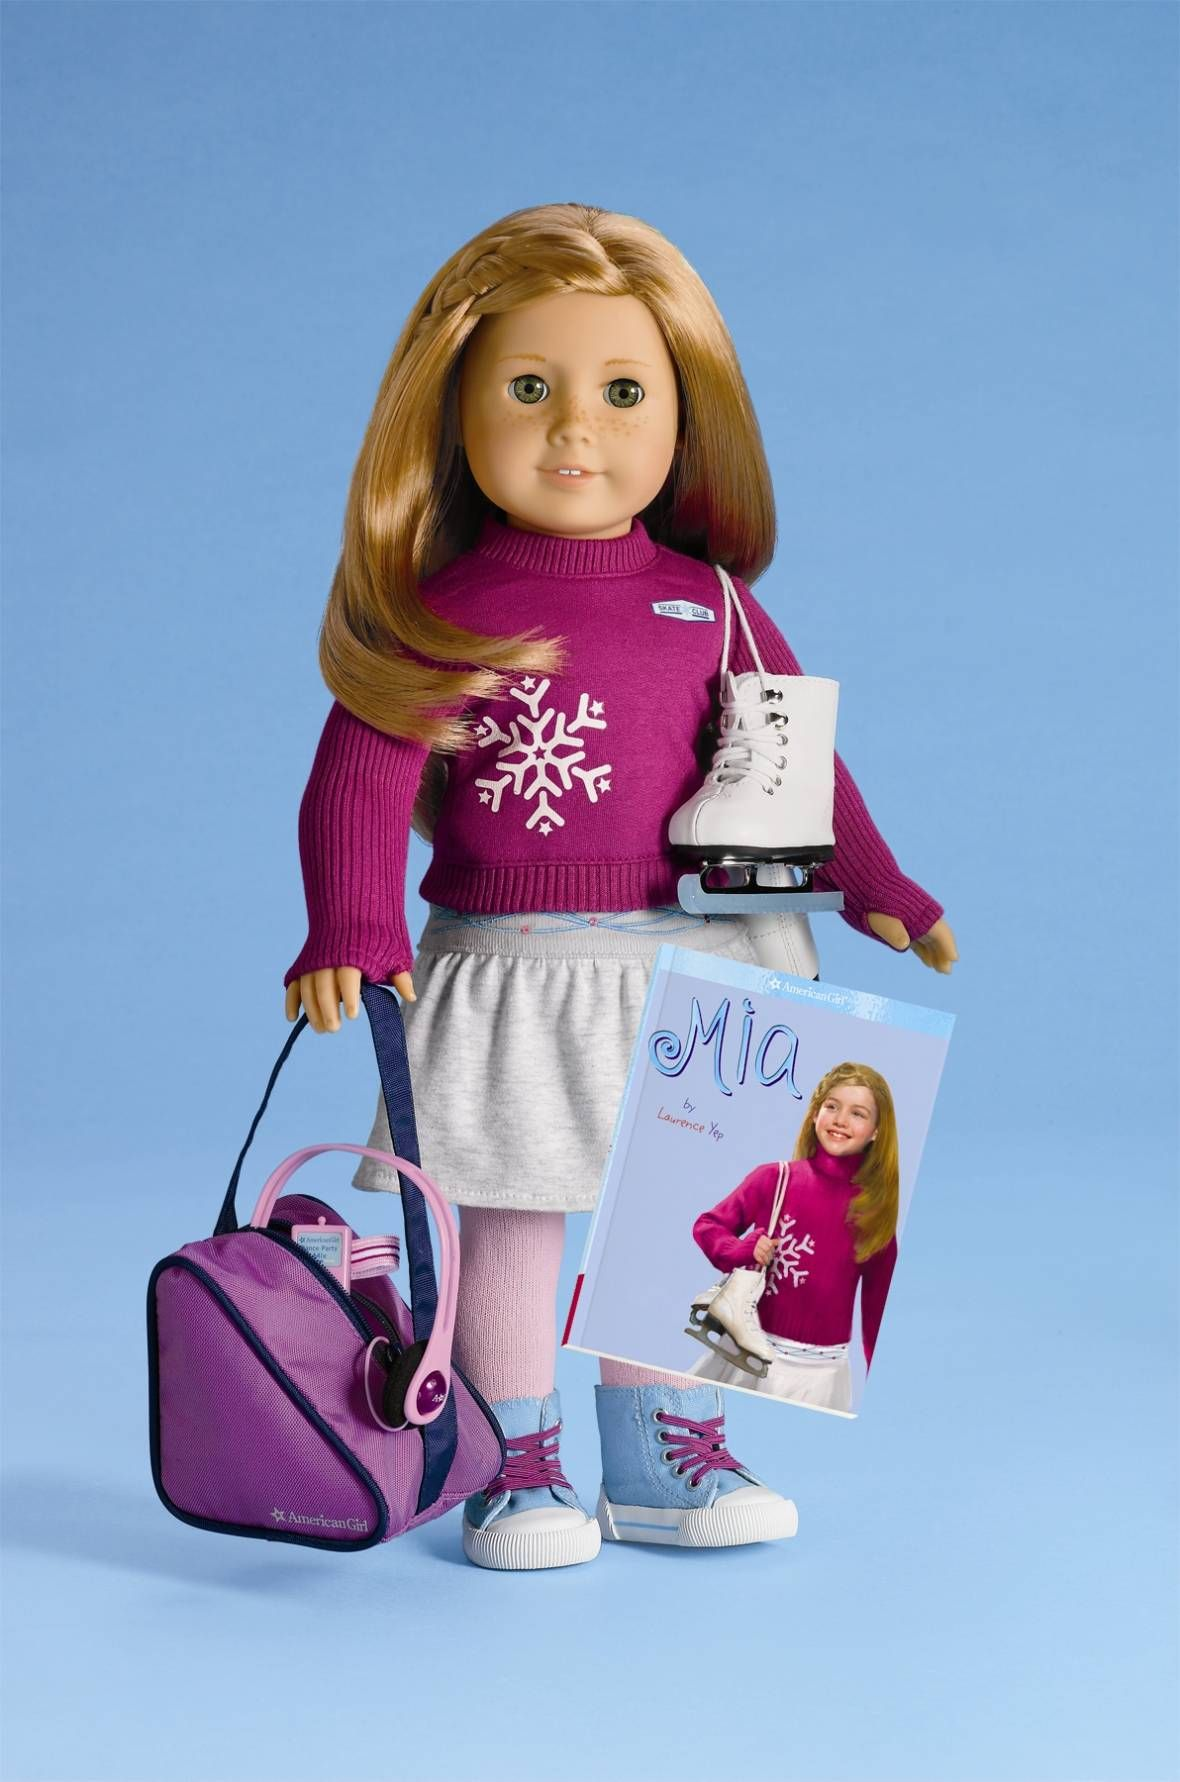 American Girl Doll of the Year Mia (2008) Mia's doll in honor of her name!!!